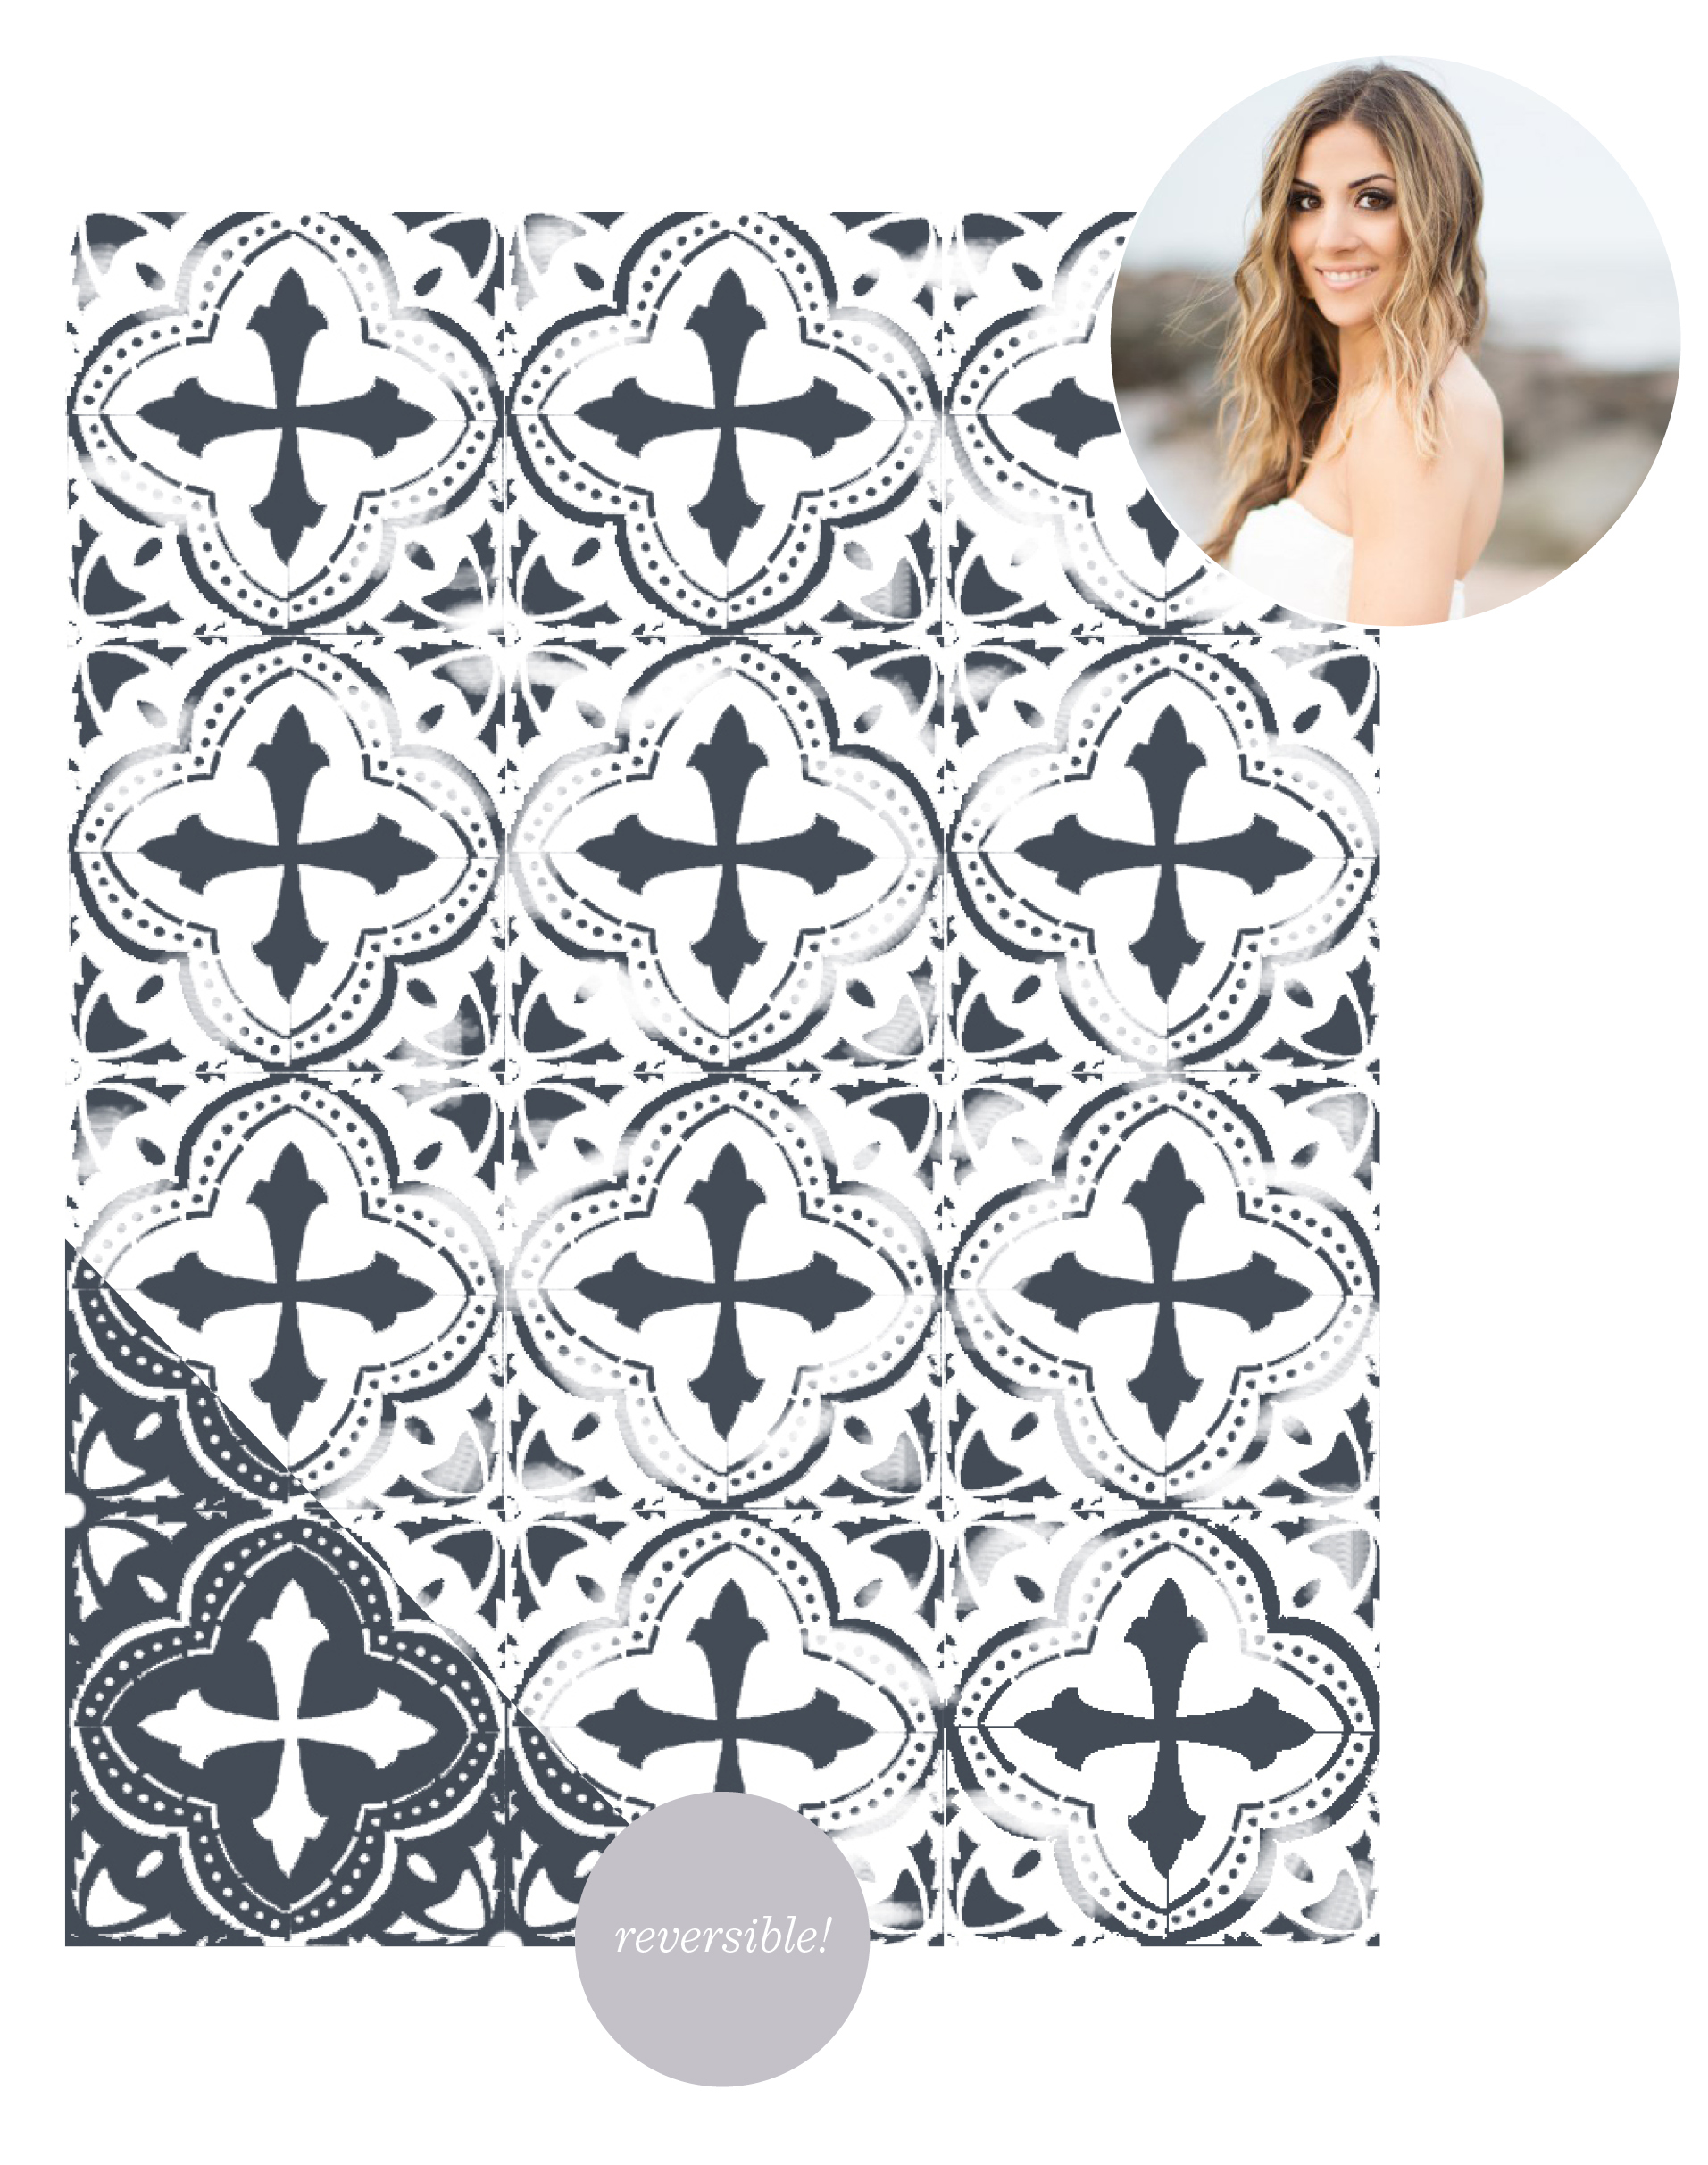 rugs do decorating annie selke don or white t rug dont fresh american style